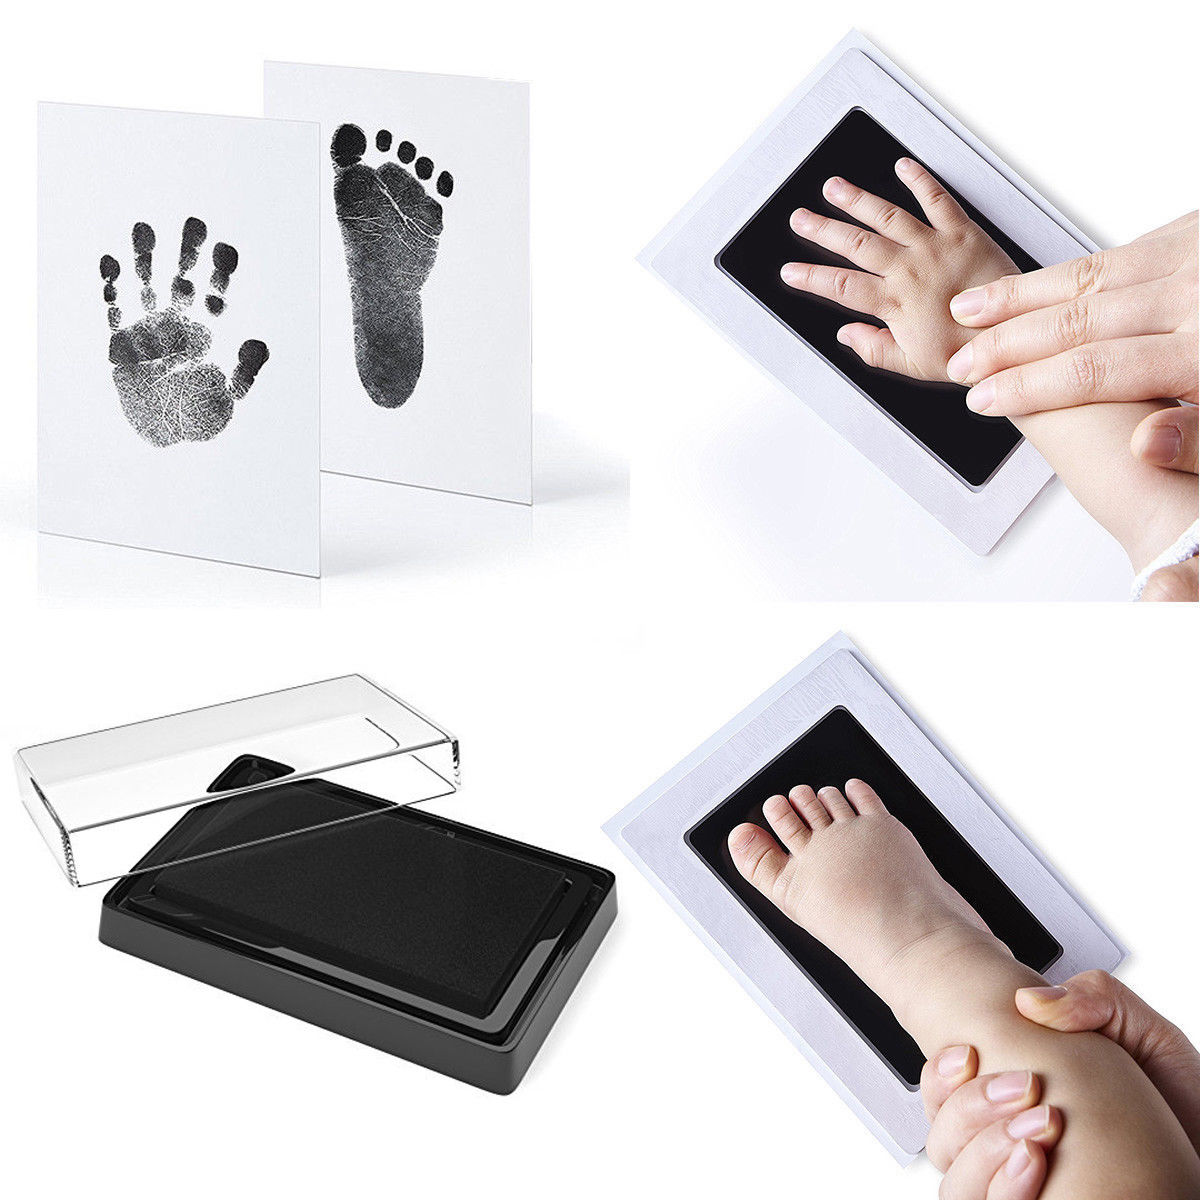 Baby Safe Print Ink Pad Footprint Handprint Kit Keepsake Maker Memories DIY